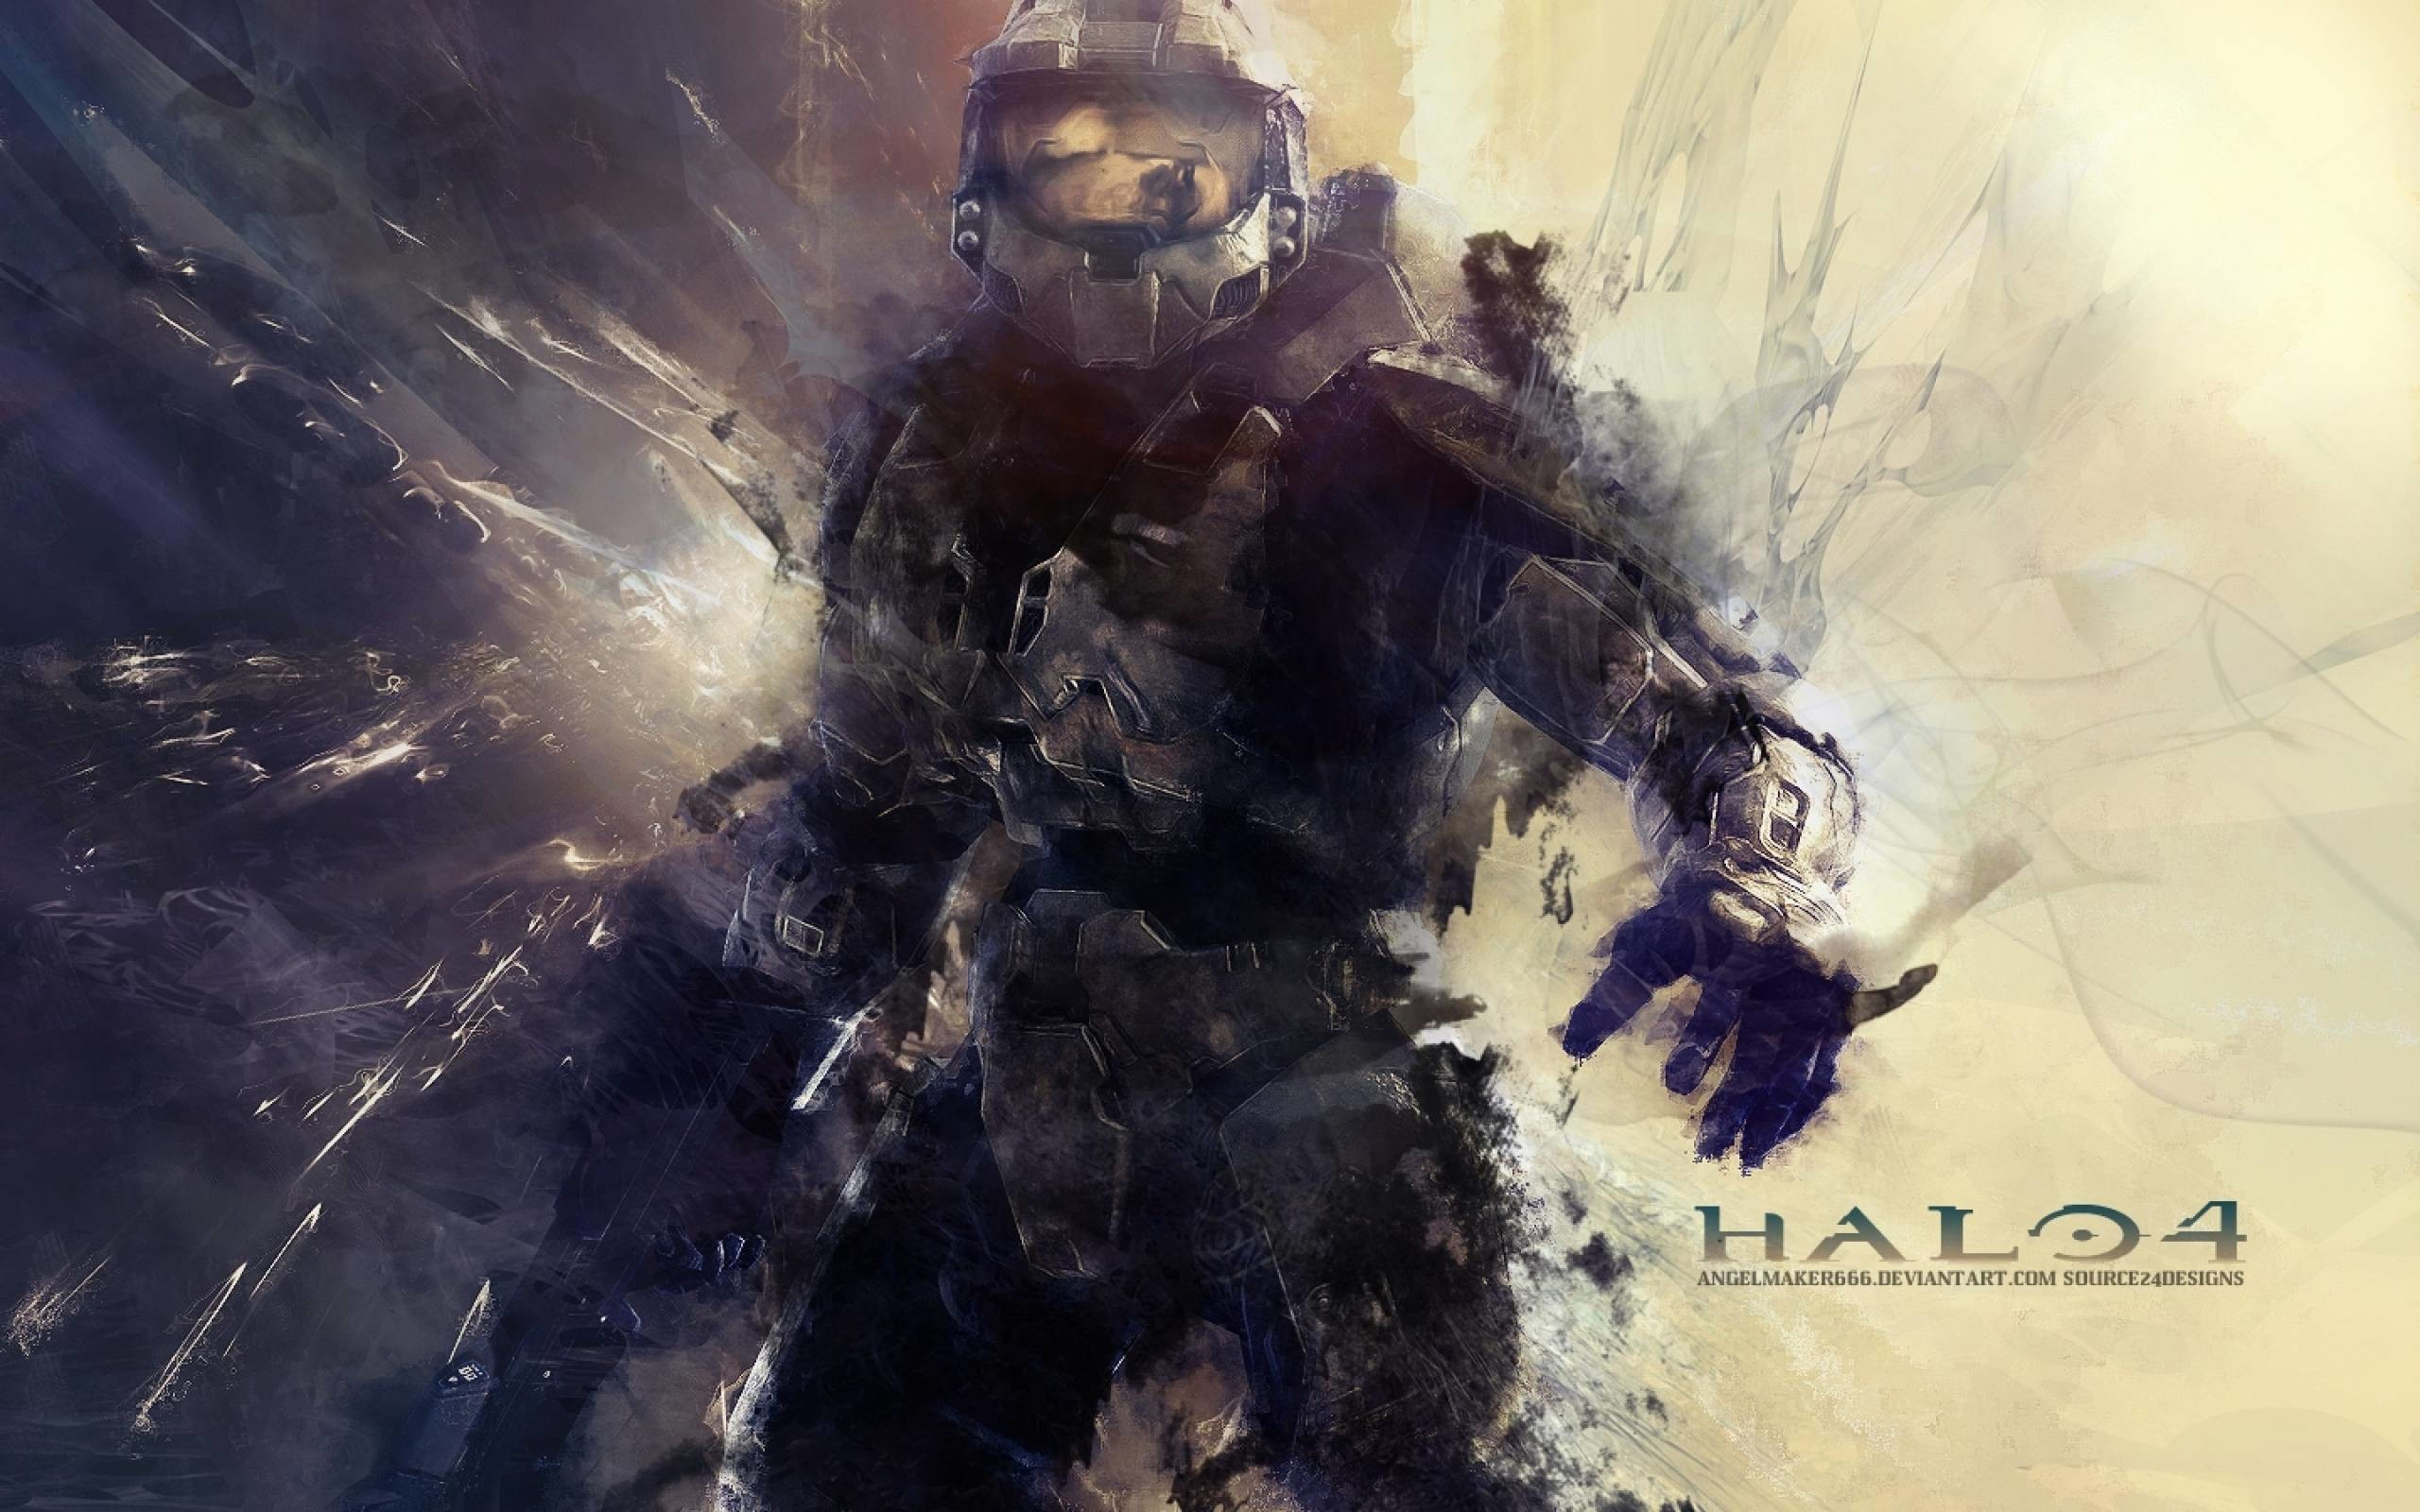 Halo Wallpapers – Full HD wallpaper search